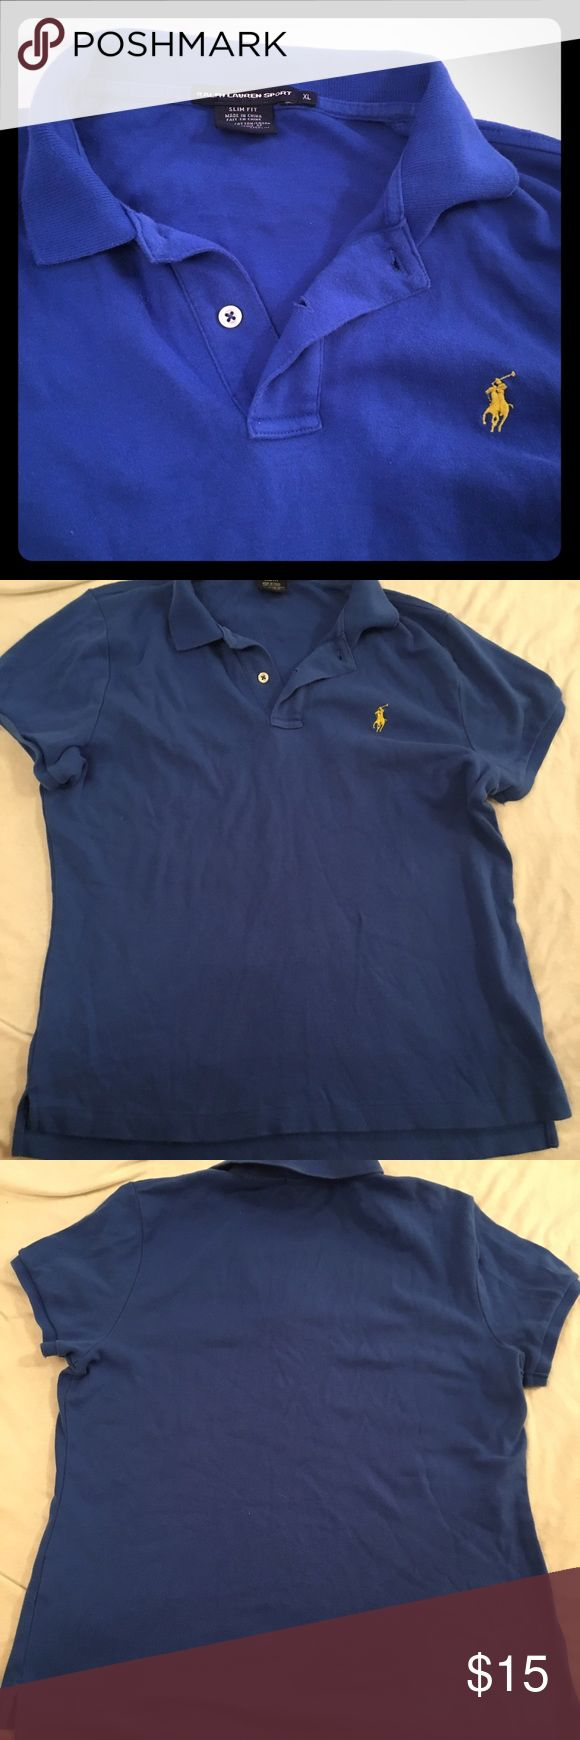 "Ralph Lauren sport slim fit shirt Ralph Lauren sport shirt Slim fit Women's XL Blue with yellow pony Chest is 22"" across Length is 25"" ralph lauren sport Tops"